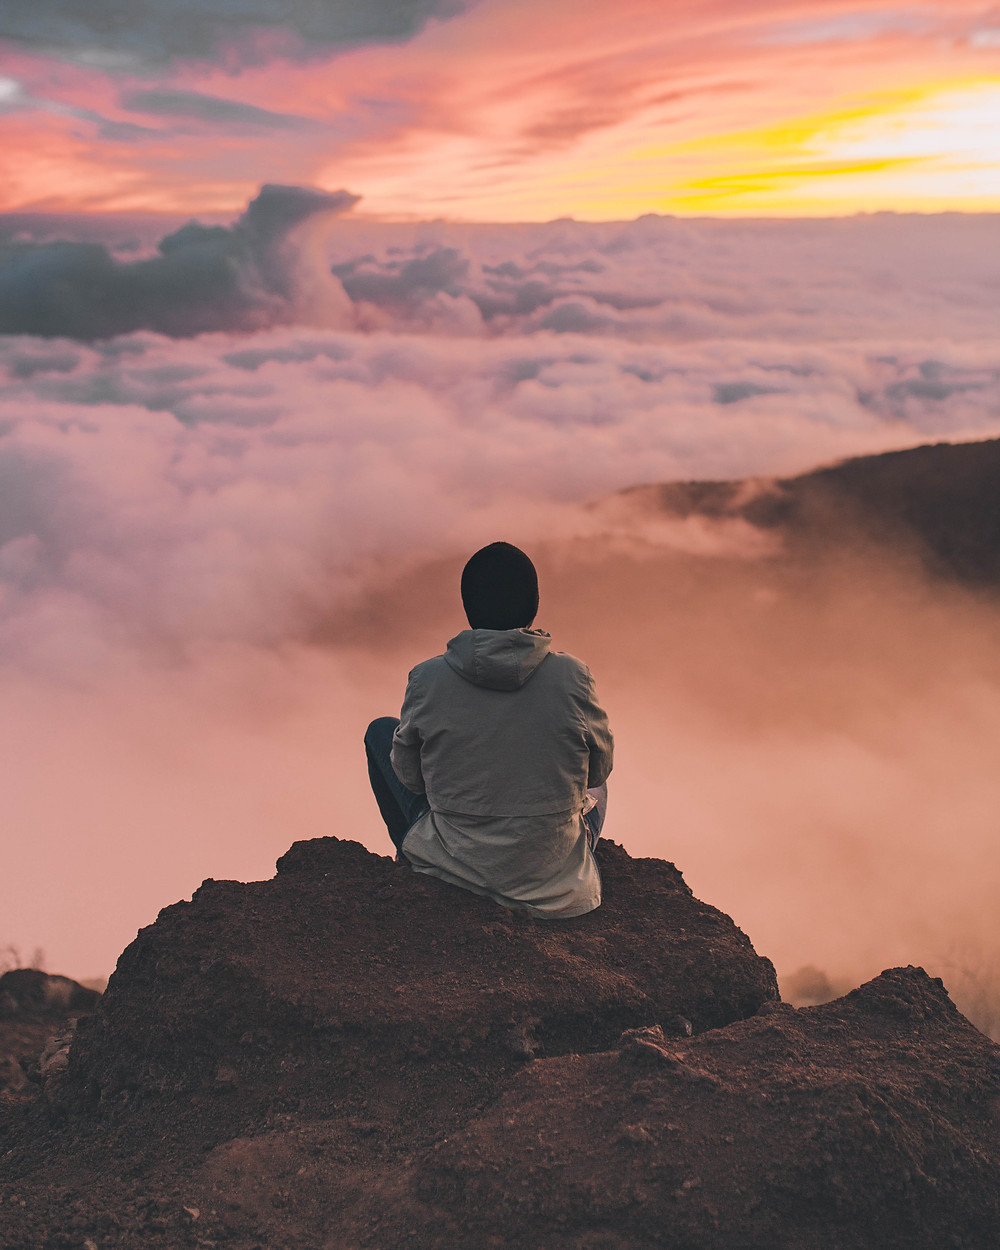 Man in a hat sitting on a rock overlooking clouds at sunset practicing meditation in Denver CO. Our caring therapists can help you learn mindfulness at Catalyss Counseling in Englewood CO 80209 and 80210